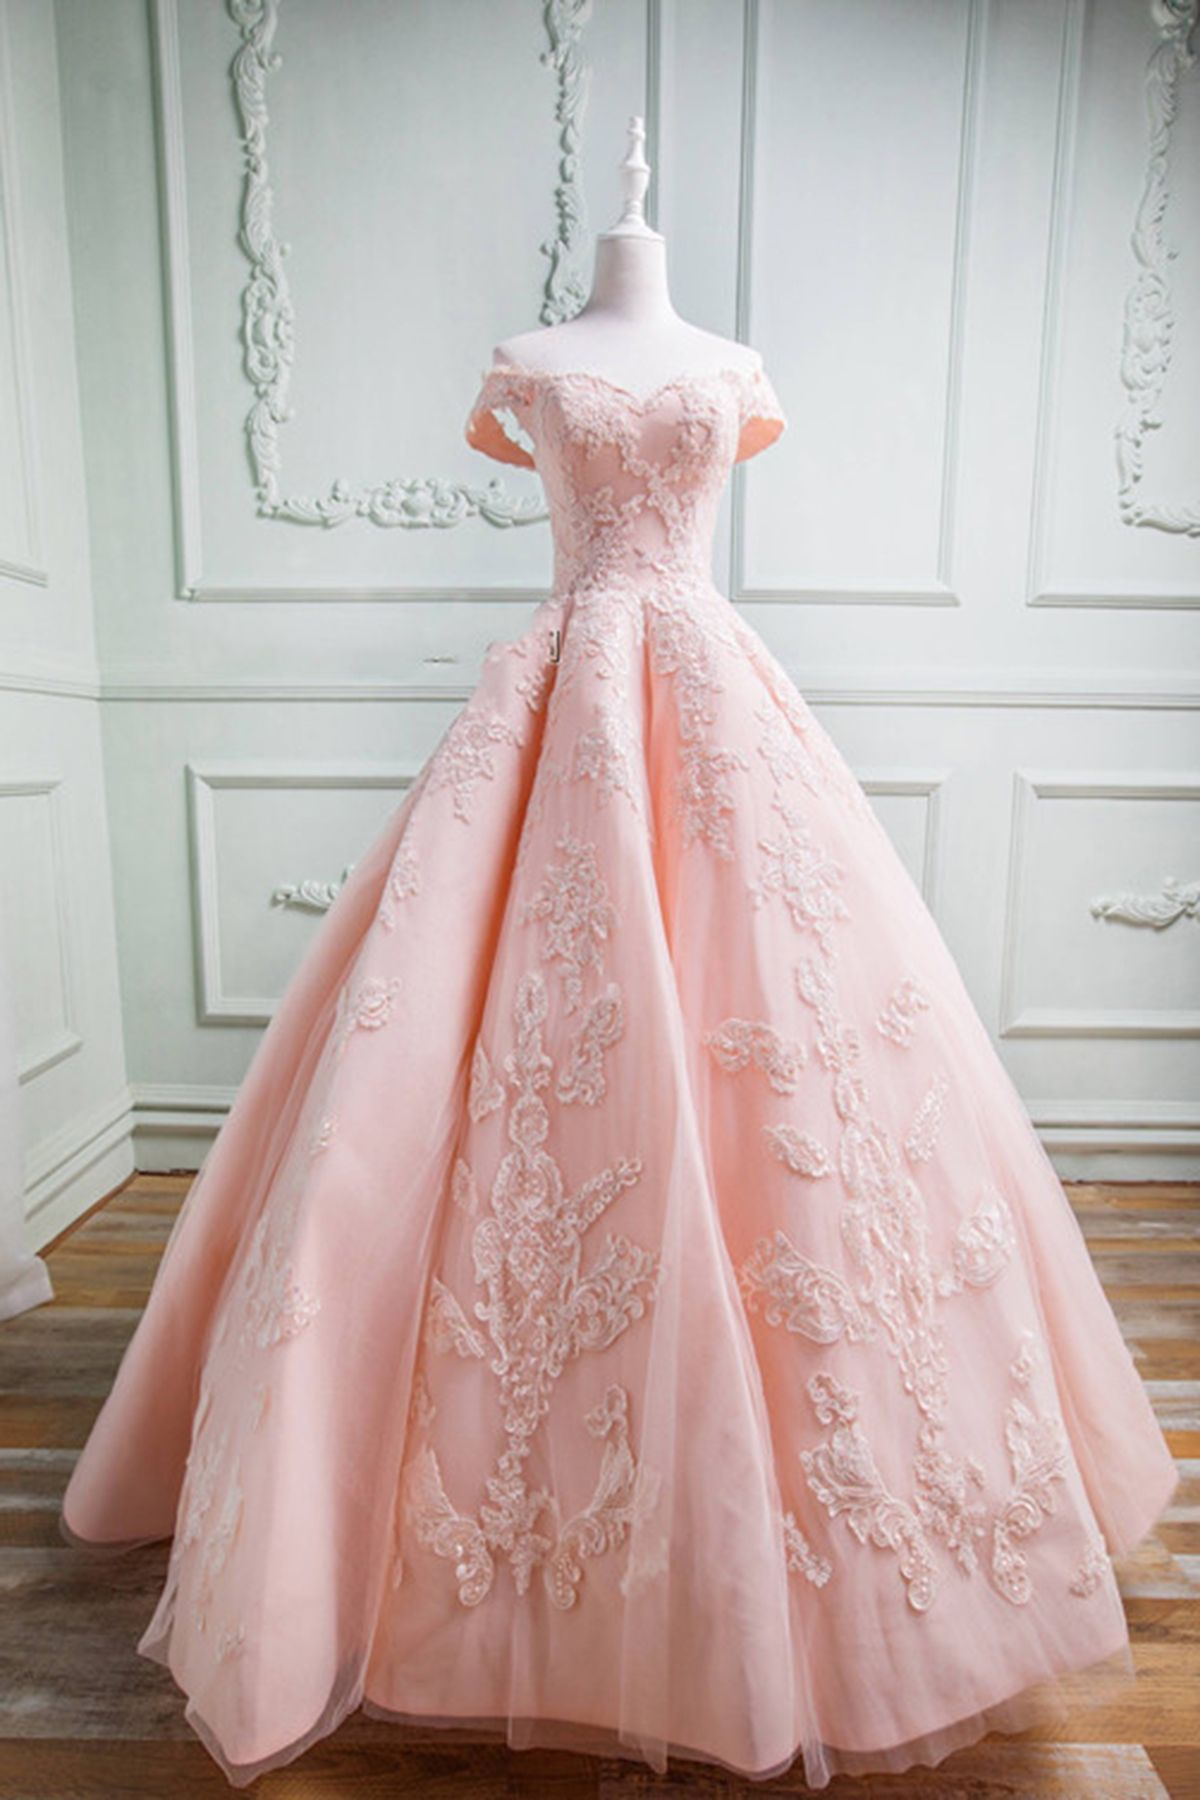 Quinceanera Dress Sweet 16 Dresses Spring Pink Tulle Sweetheart Neckline Long Off Shoulder Evening Dress Long Formal Prom Gown Prom Dresses Lace Ball Dresses Gowns Dresses [ 1800 x 1200 Pixel ]